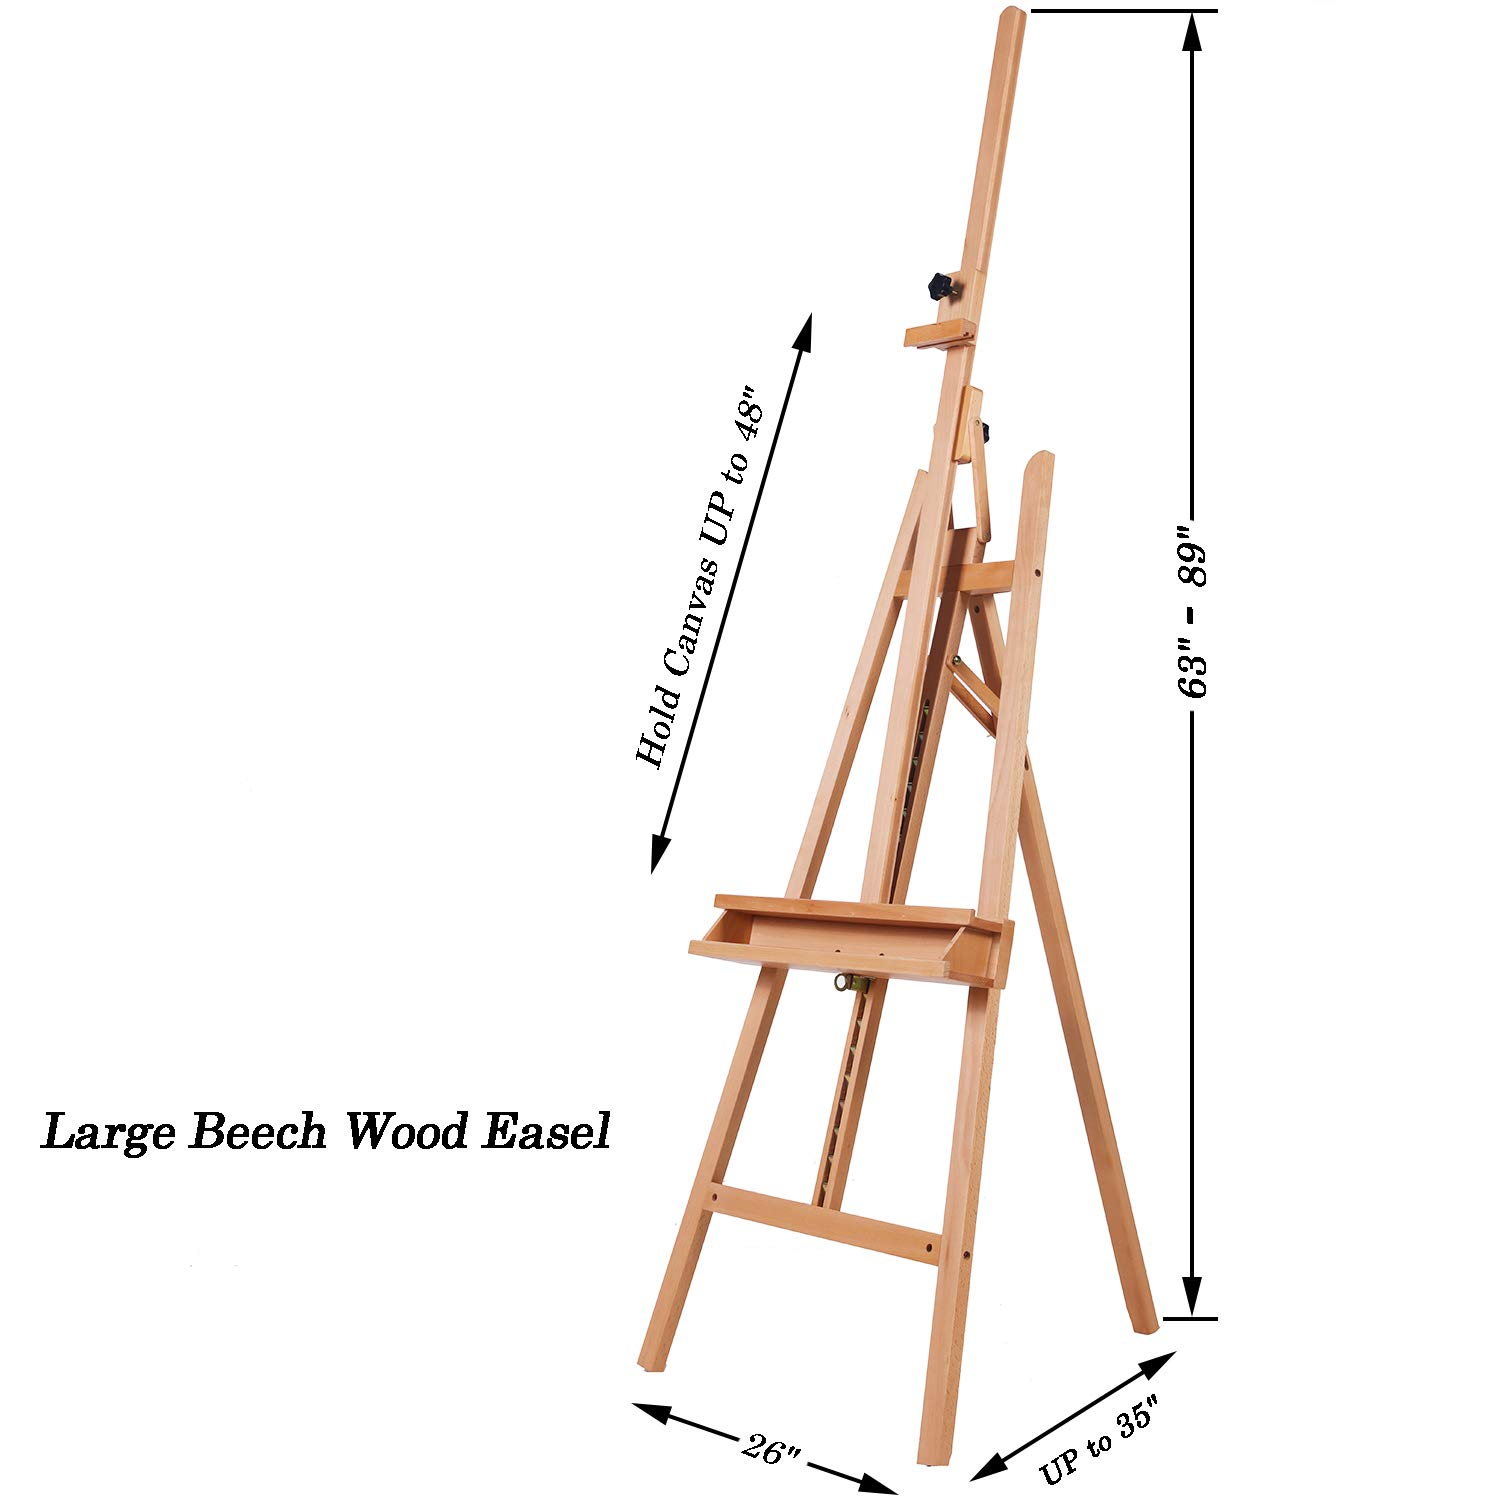 ATWORTH Large Painters Easel Adjustable Beech Wood Artist Easel, Studio Easel for Adults with Brush Holder, Holds Canvas up to 48'' by ATWORTH (Image #1)